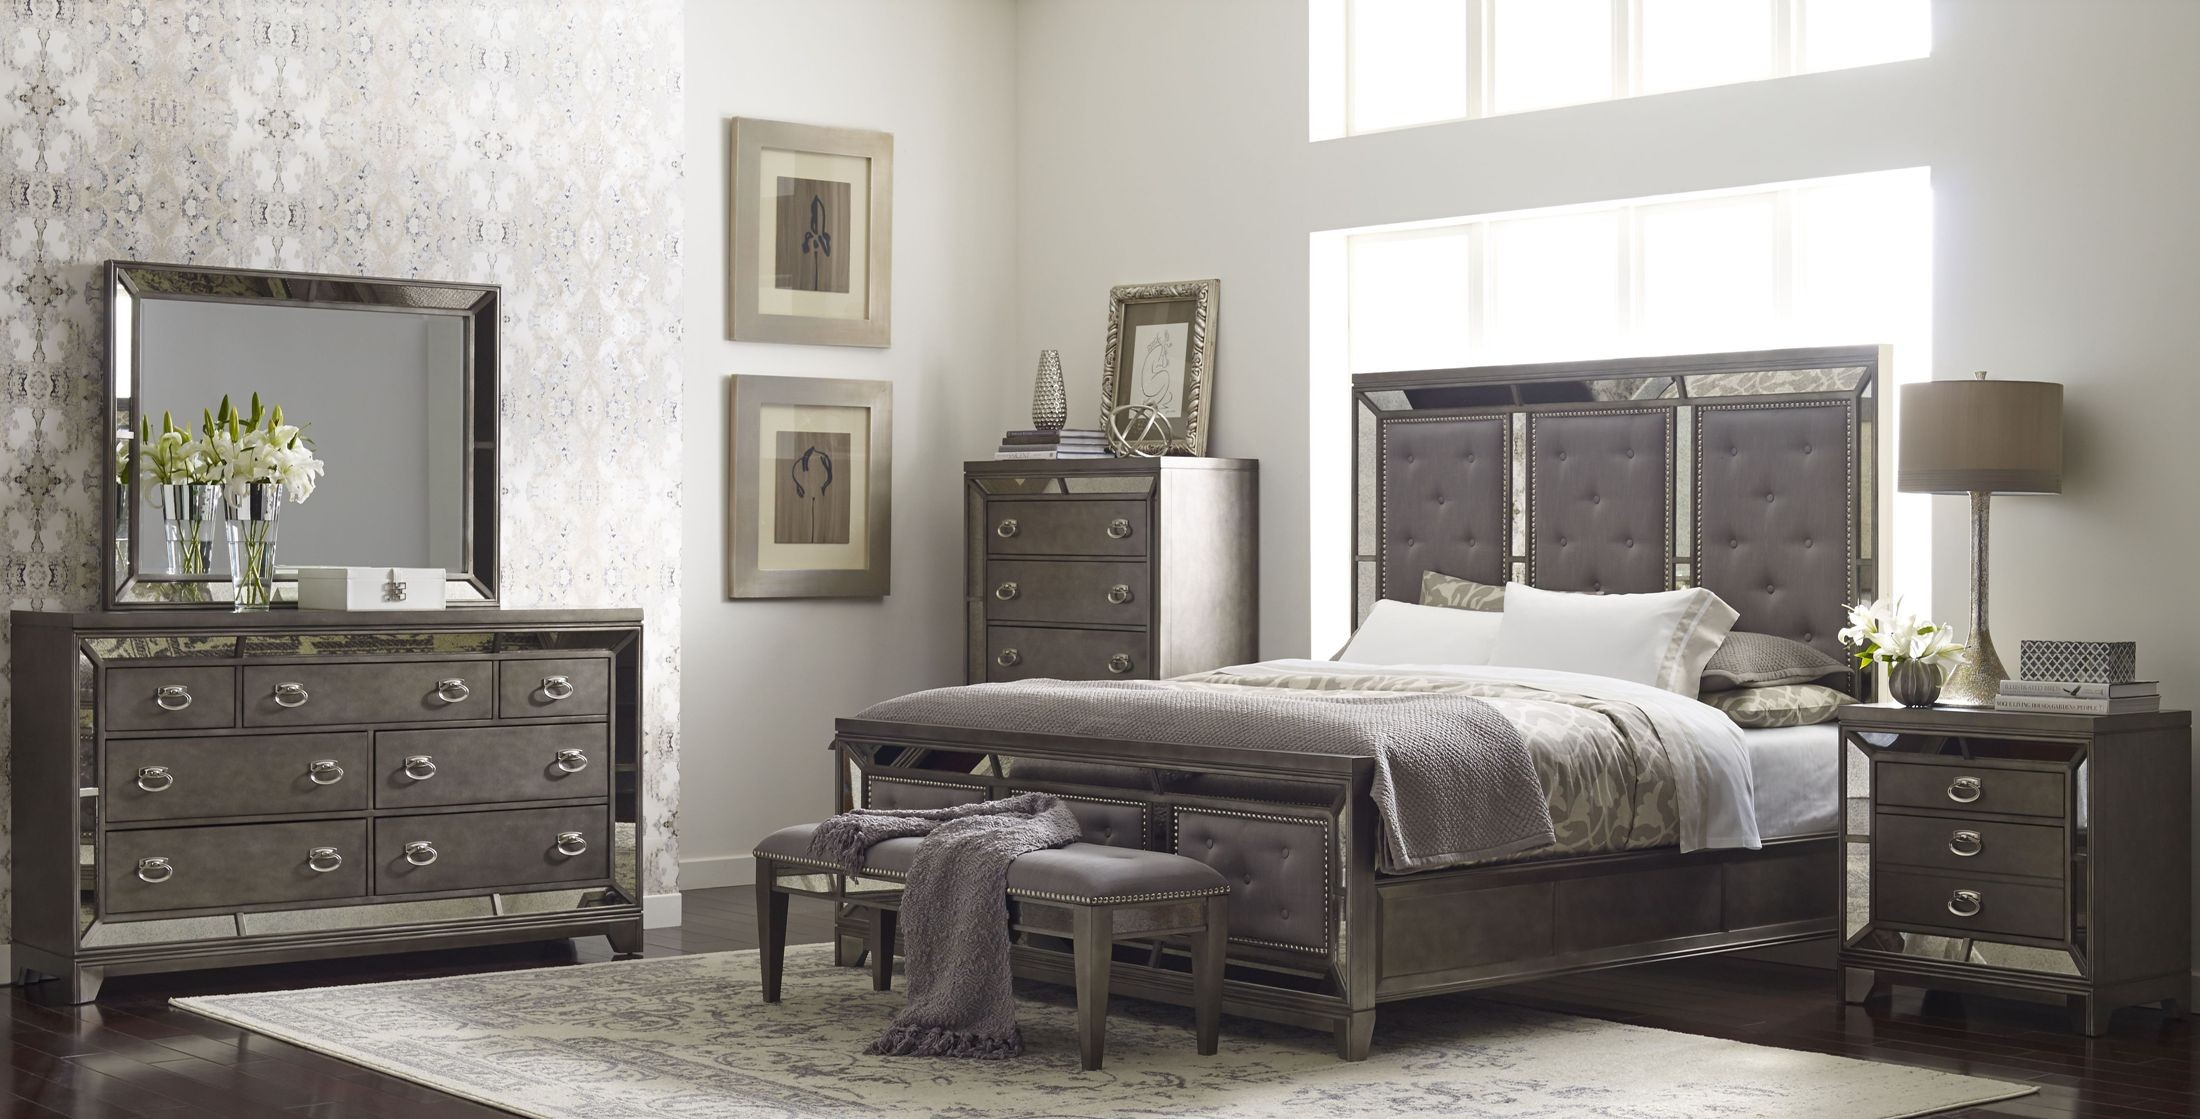 lenox platinum painted upholstered panel bedroom set from avalon furniture | coleman furniture